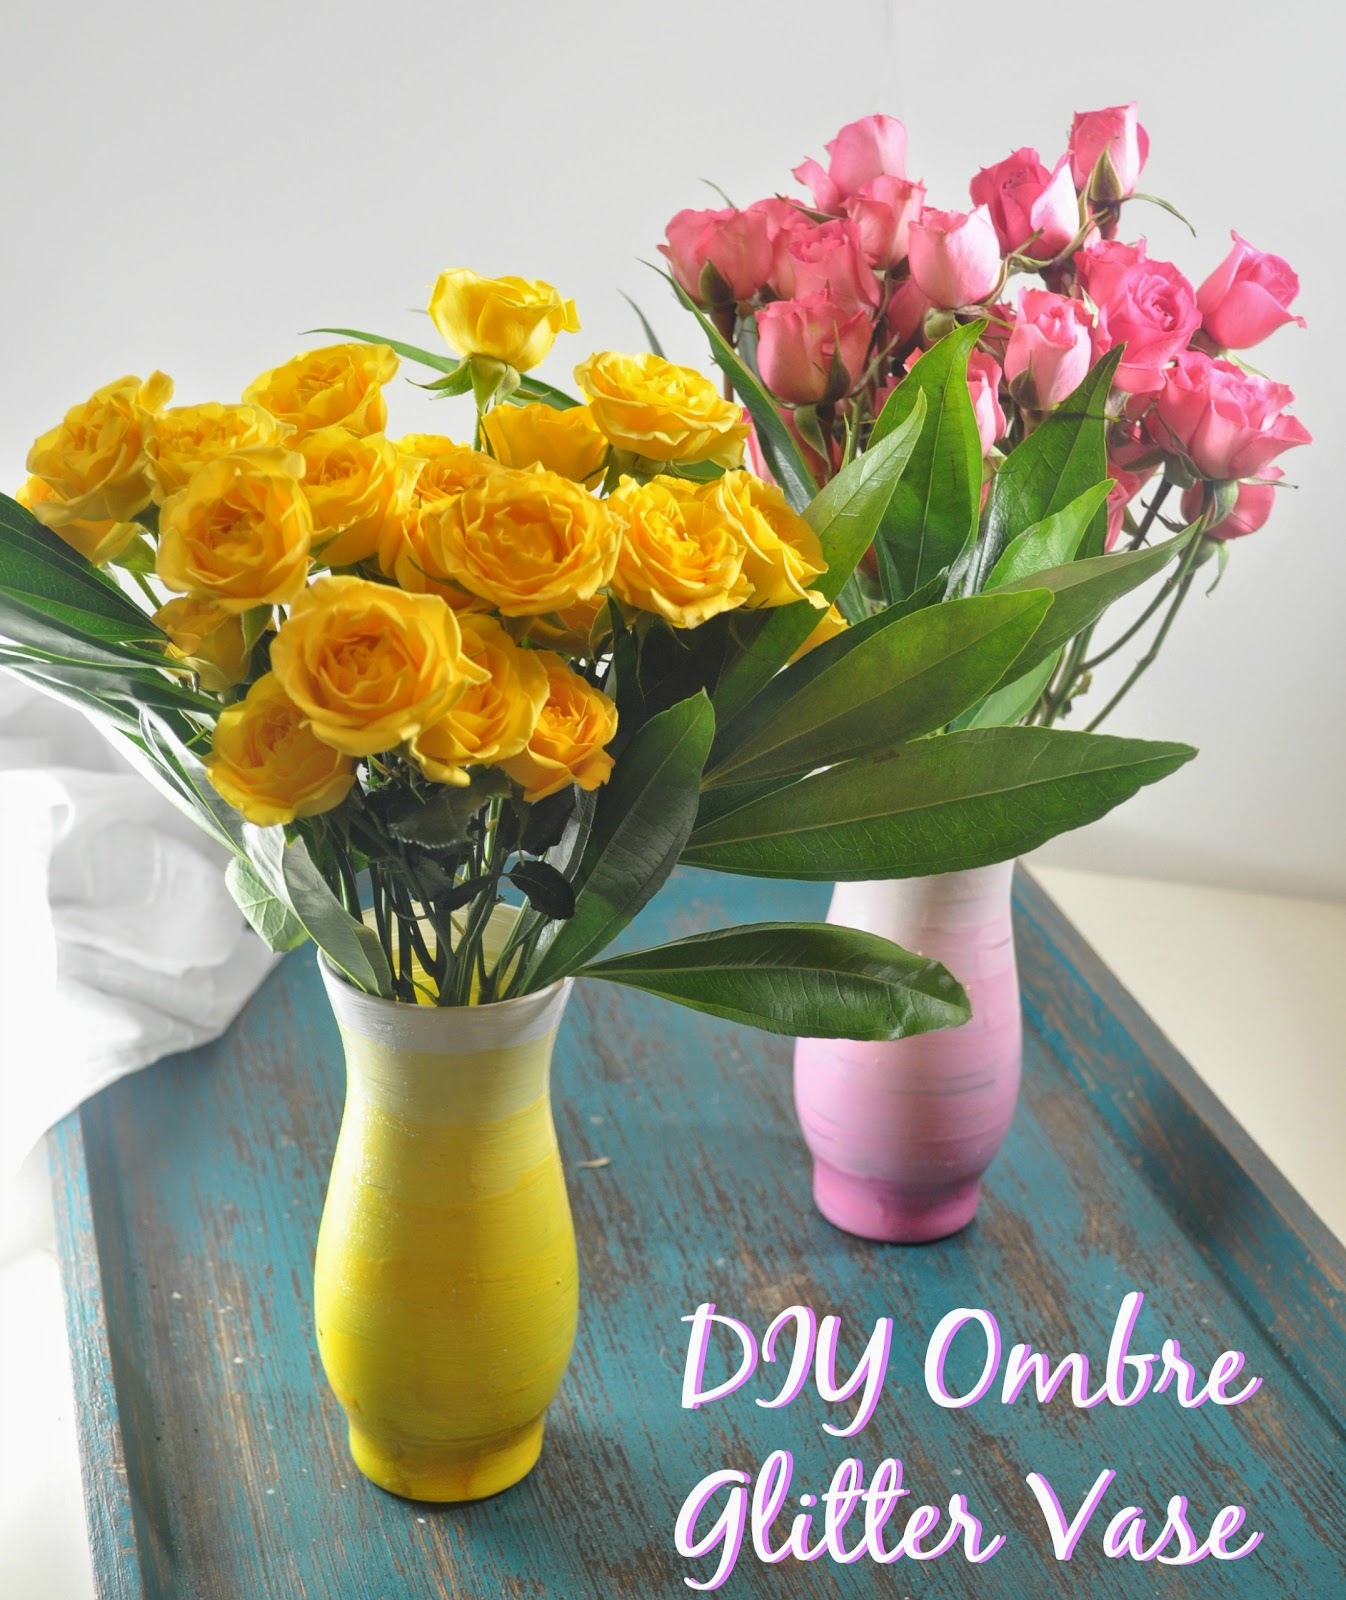 Diy ombre glitter vases for under 2 the food hussy so off we went to make diy ombre glitter vases reviewsmspy